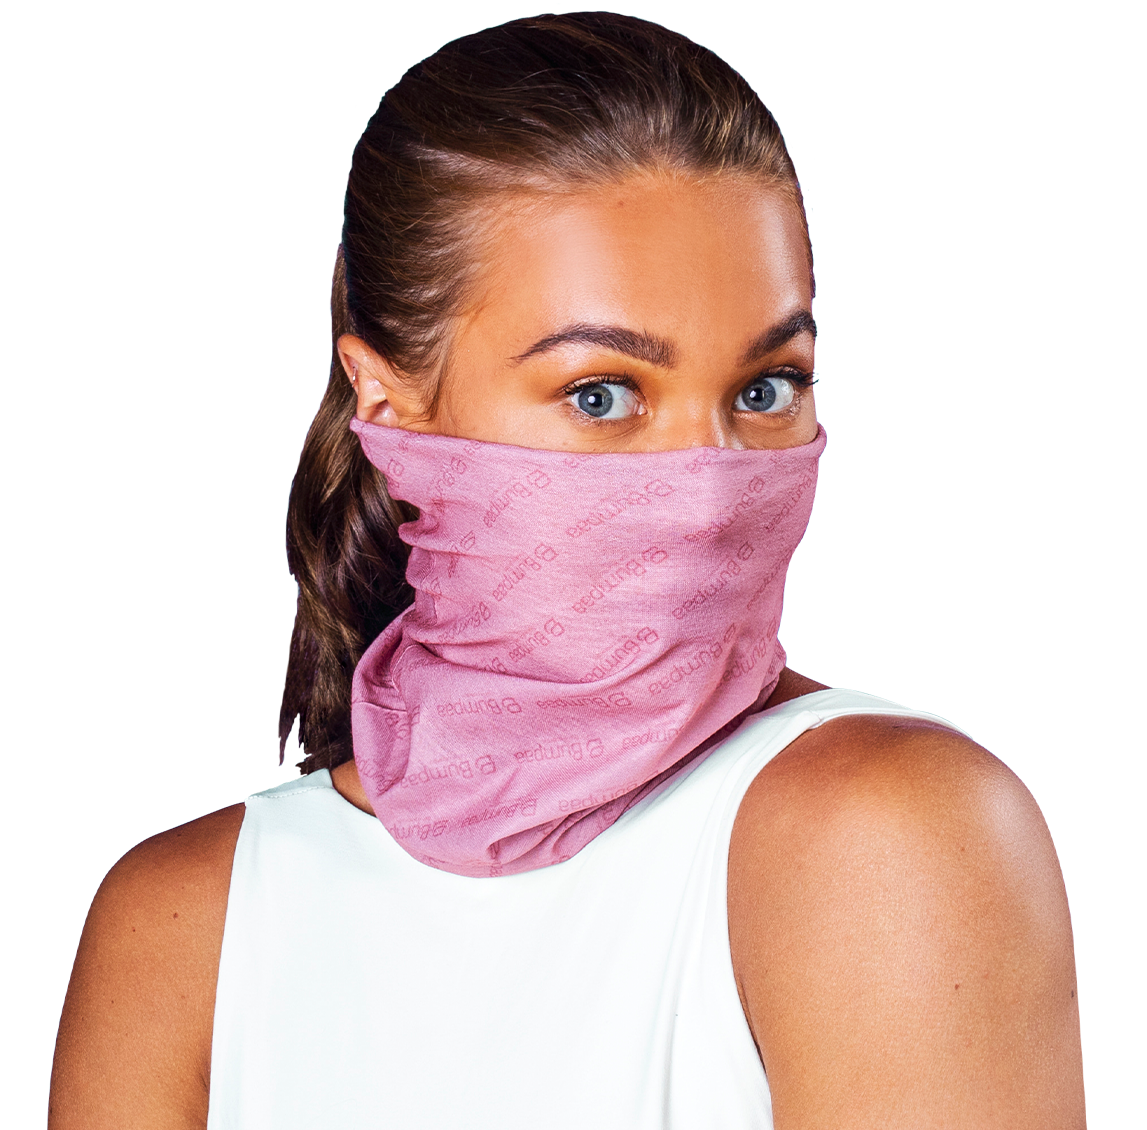 Anti Viral face masks and accessories manufactured in the UK